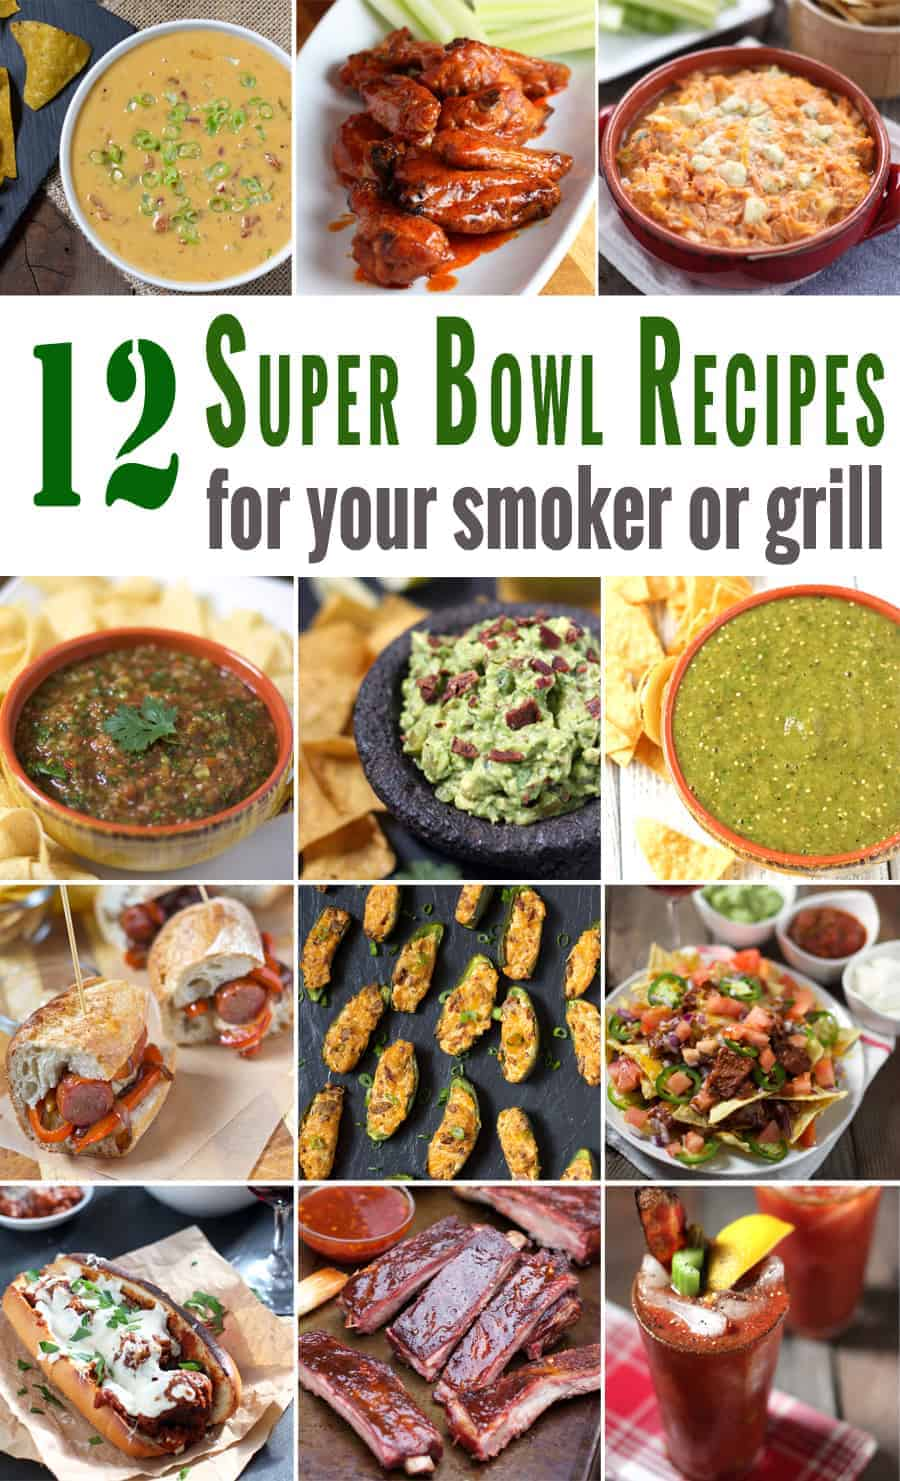 12 Super Bowl Recipes for your Smoker or Grill. From dips, to salsas, ribs, sandwiches, to cocktails, and Buffalo flavored treats, we've got you covered. Bust out your grill and smoker this Sunday for an awesome lineup of game day dishes!!!